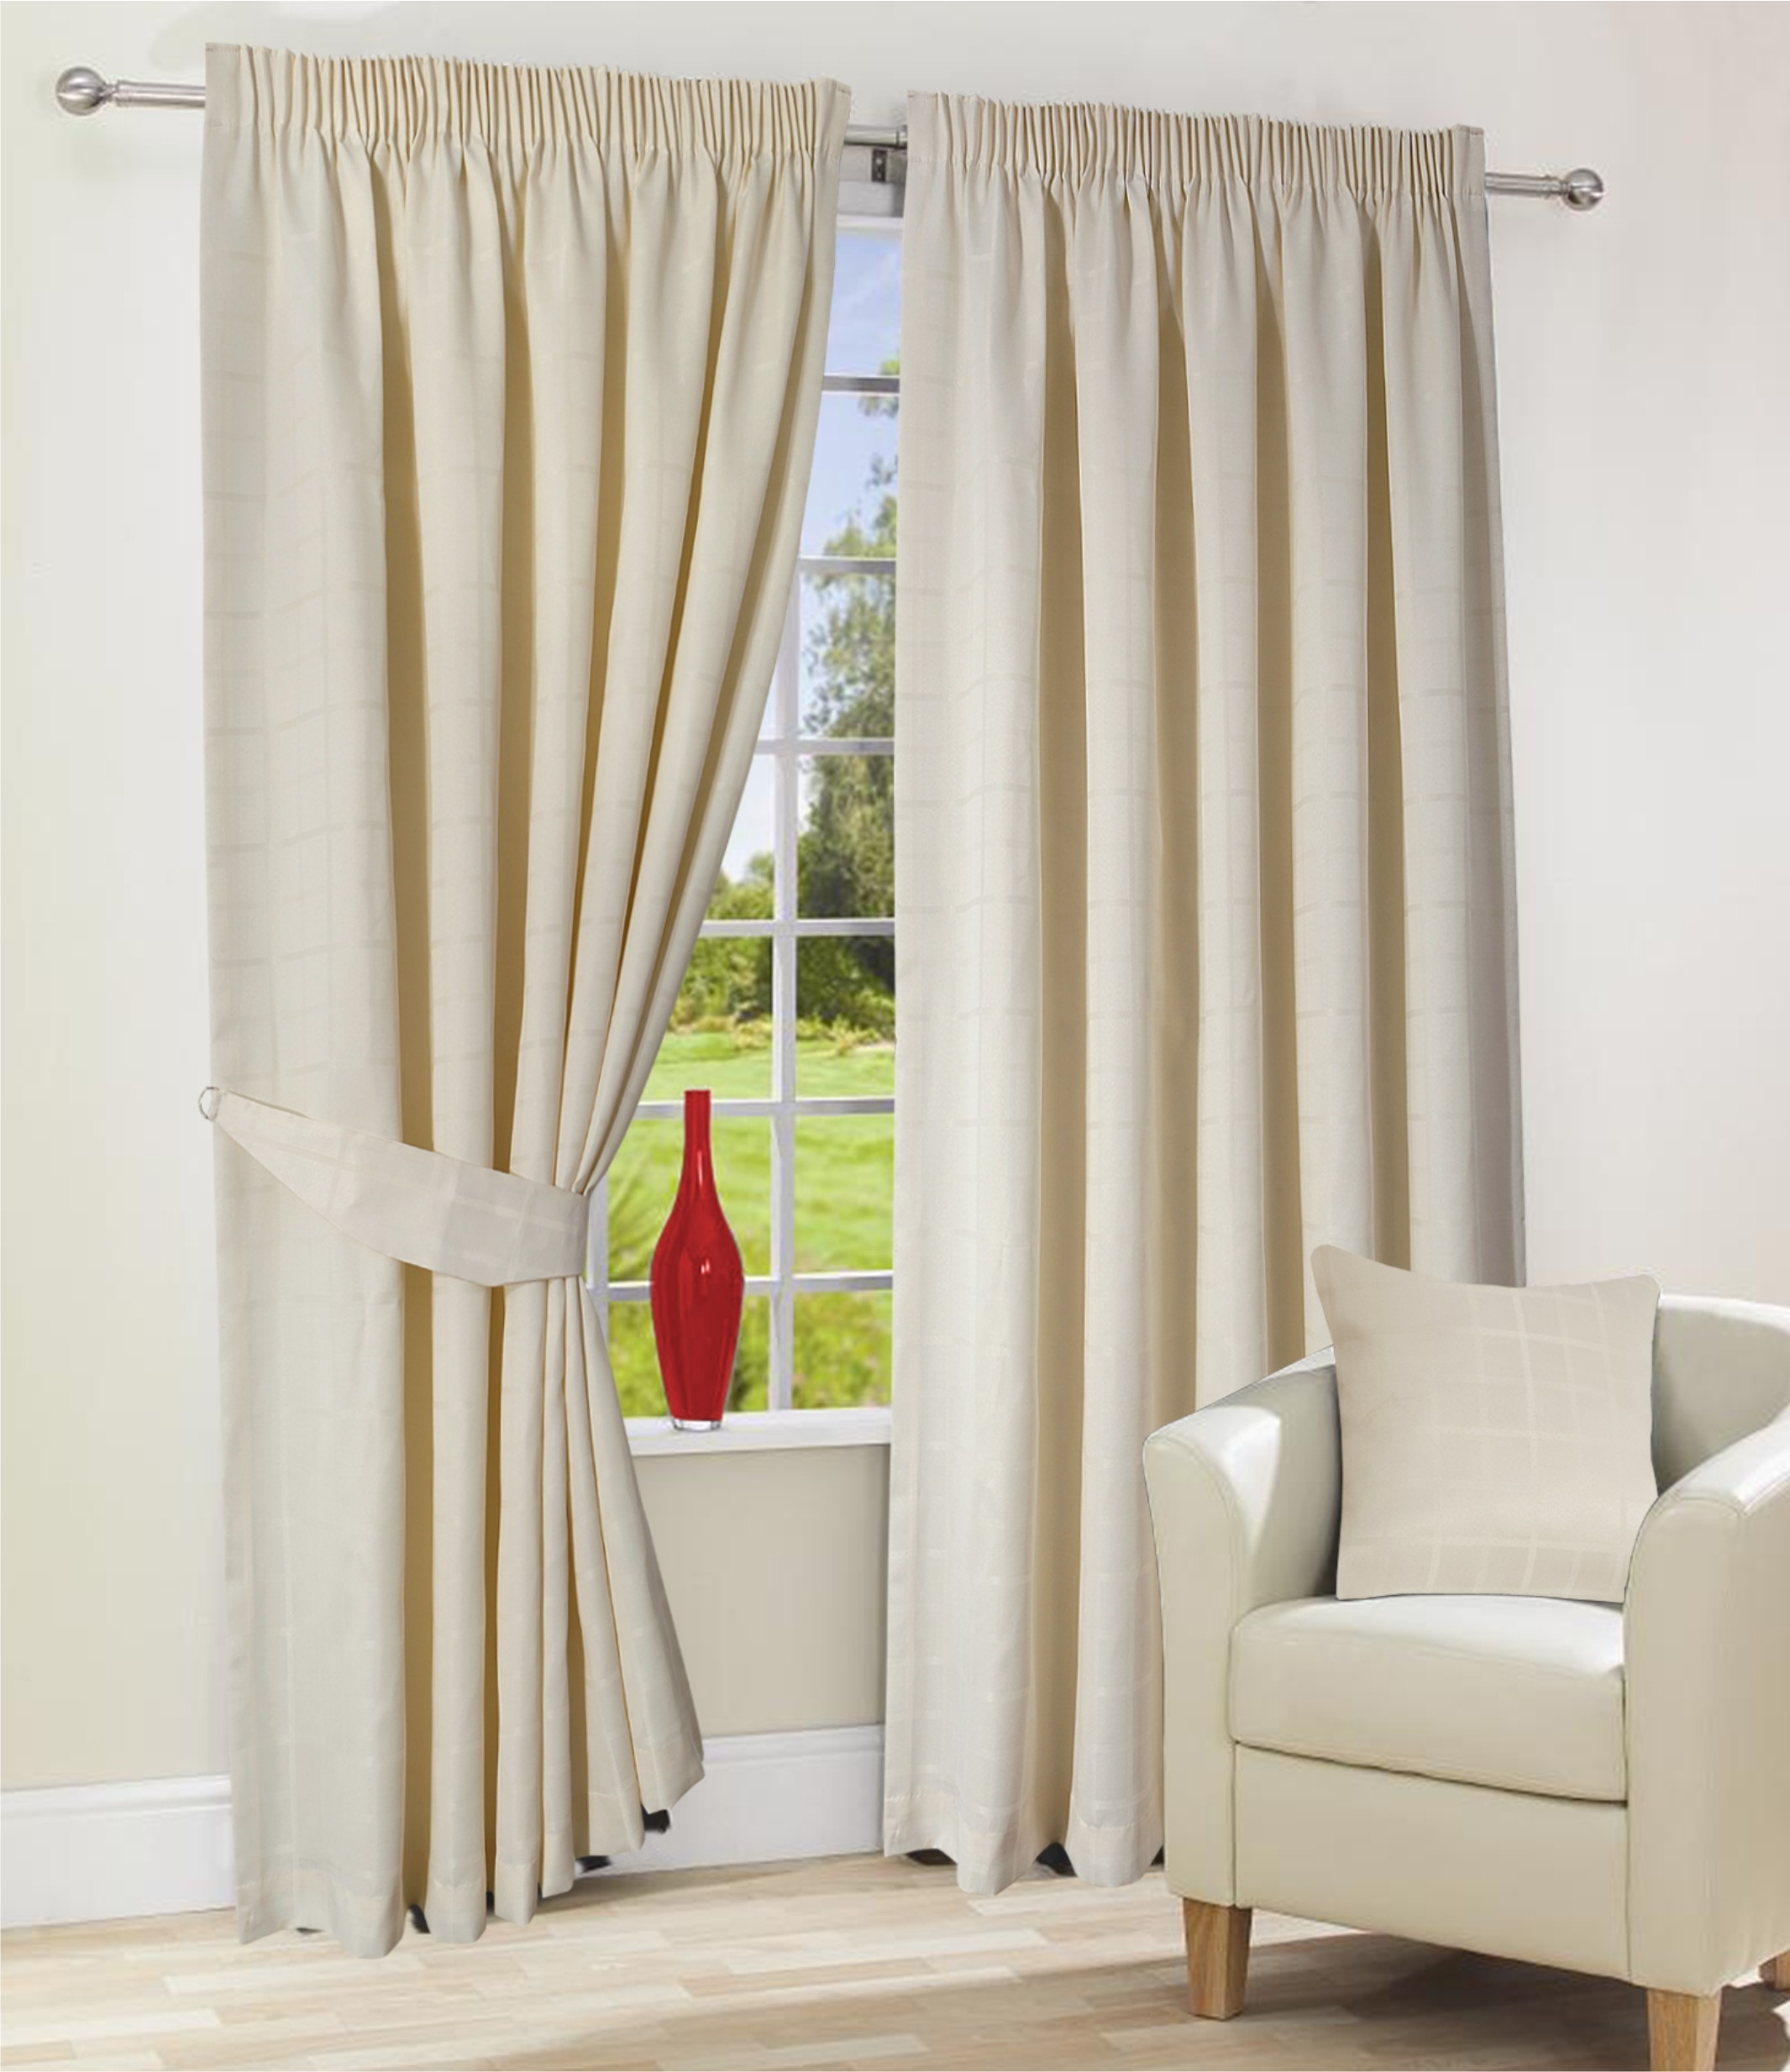 Lined Curtains Not Just A Covering Egovjournal Home Within Lined Cream Curtains (Image 9 of 15)